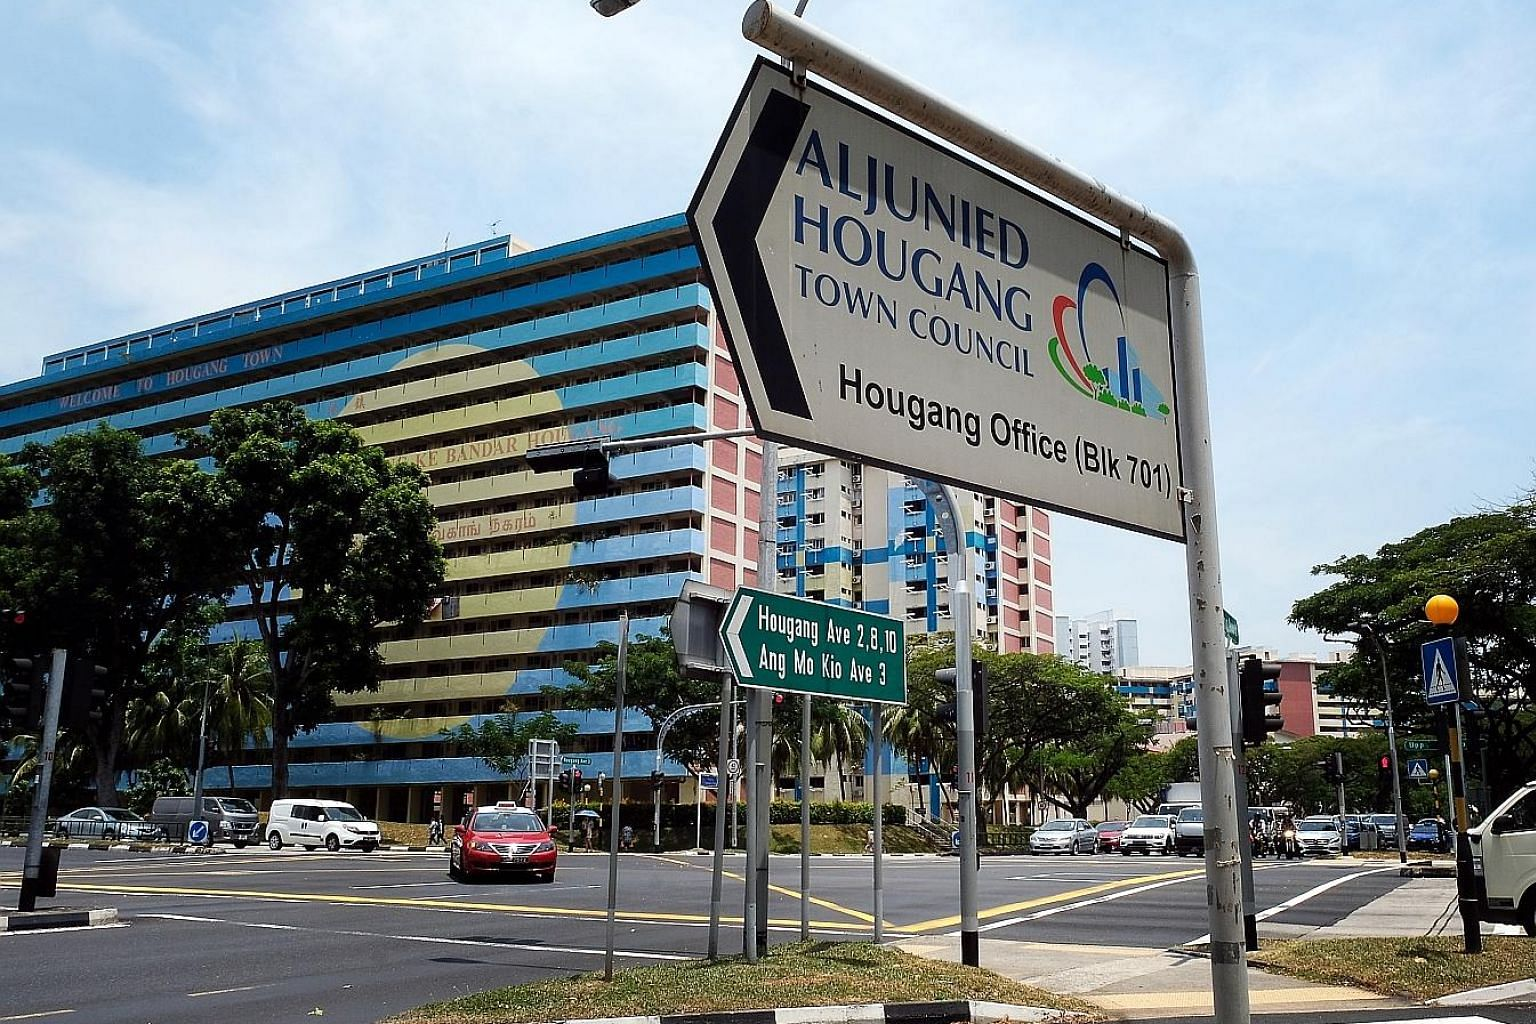 Lawyers for Aljunied-Hougang Town Council argued that, contrary to the defence's claim, the defendants are fiduciaries, not just mere custodians of public funds.